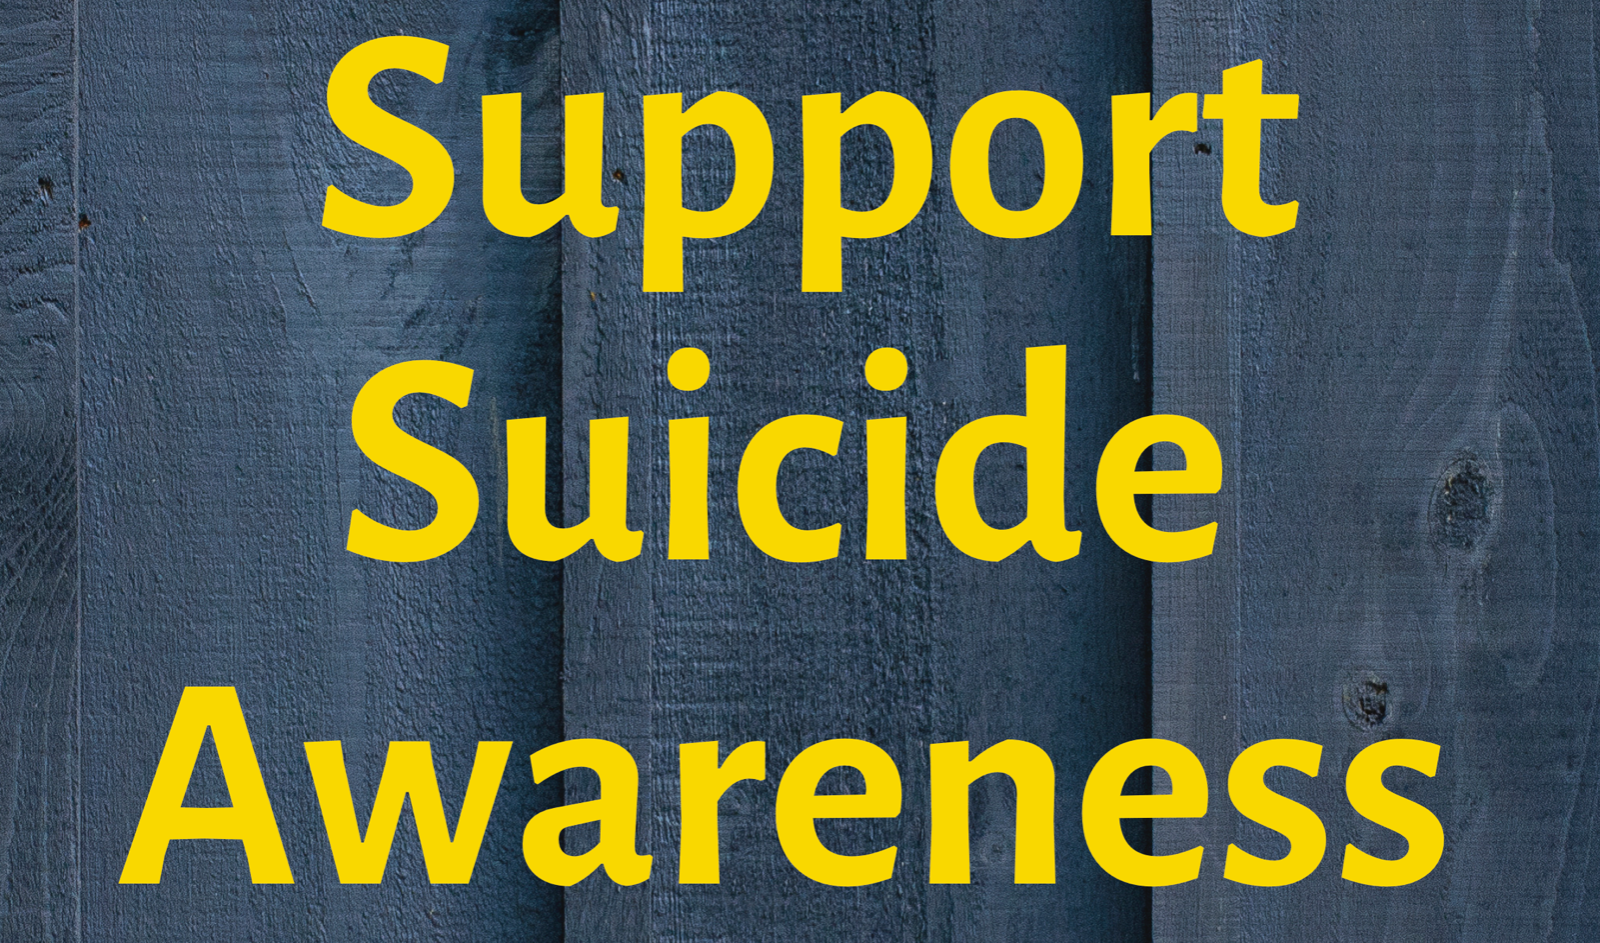 WHHS to support Suicide Awareness on Sept. 12th (Wear Yellow)